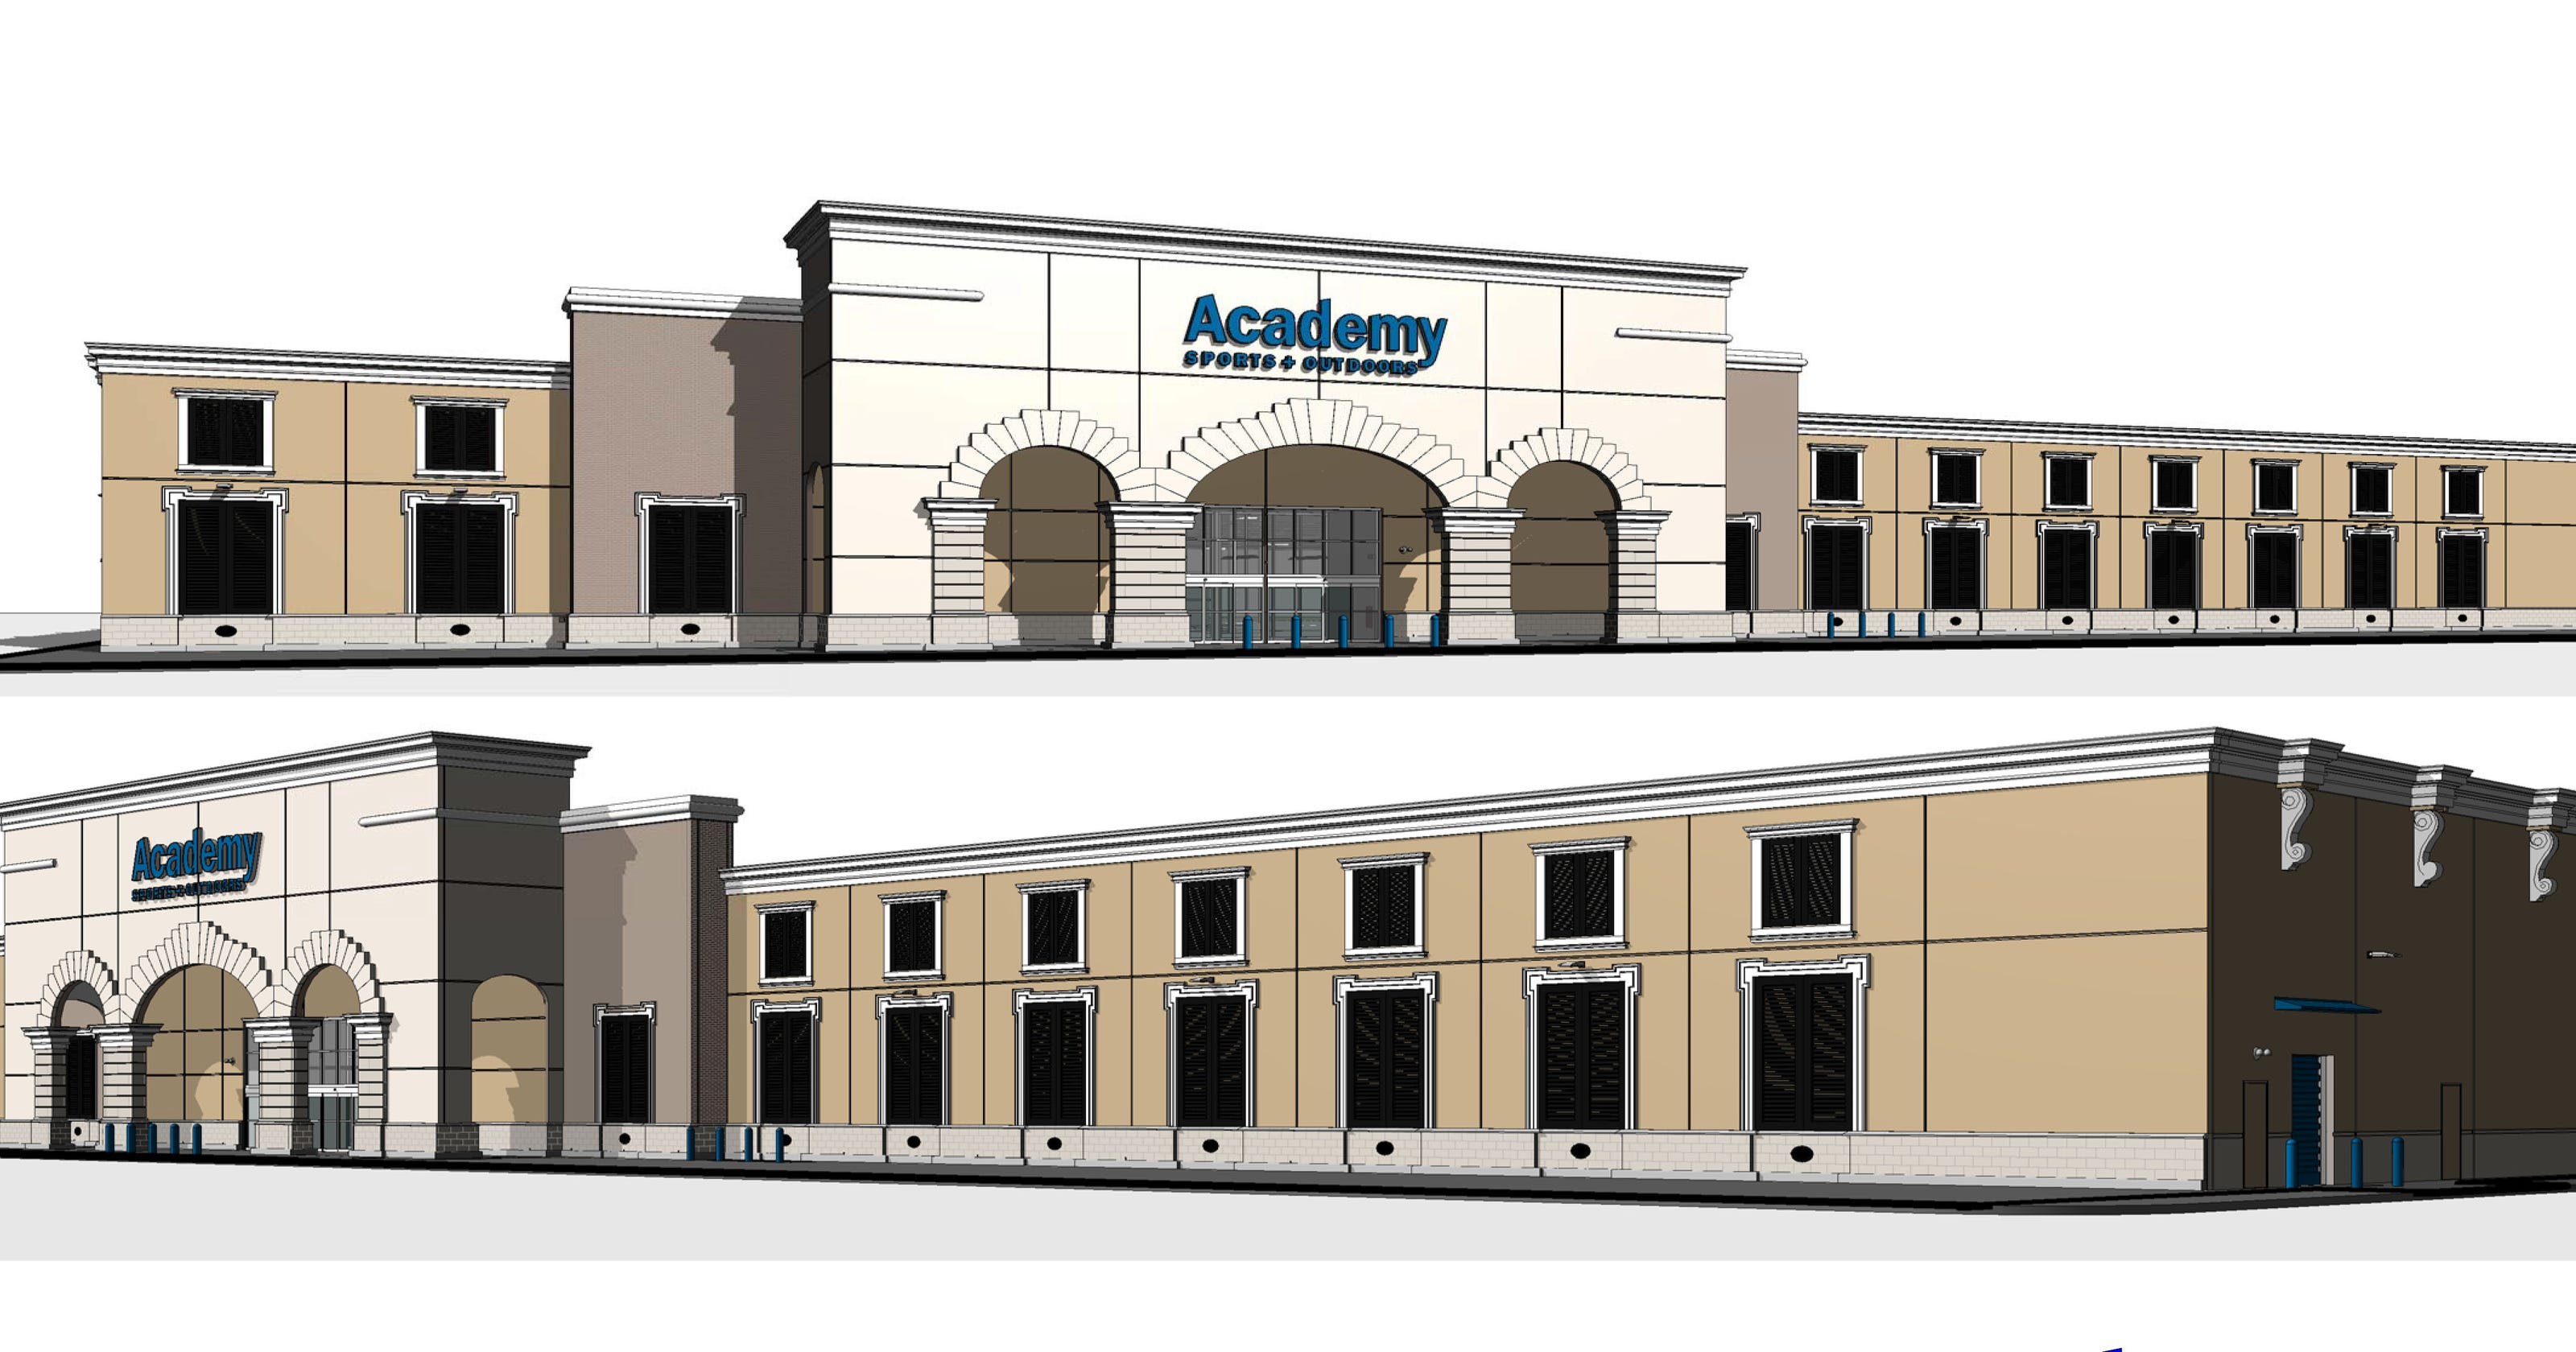 Crawford Farms Madison to include Hobby Lobby, Academy Sports